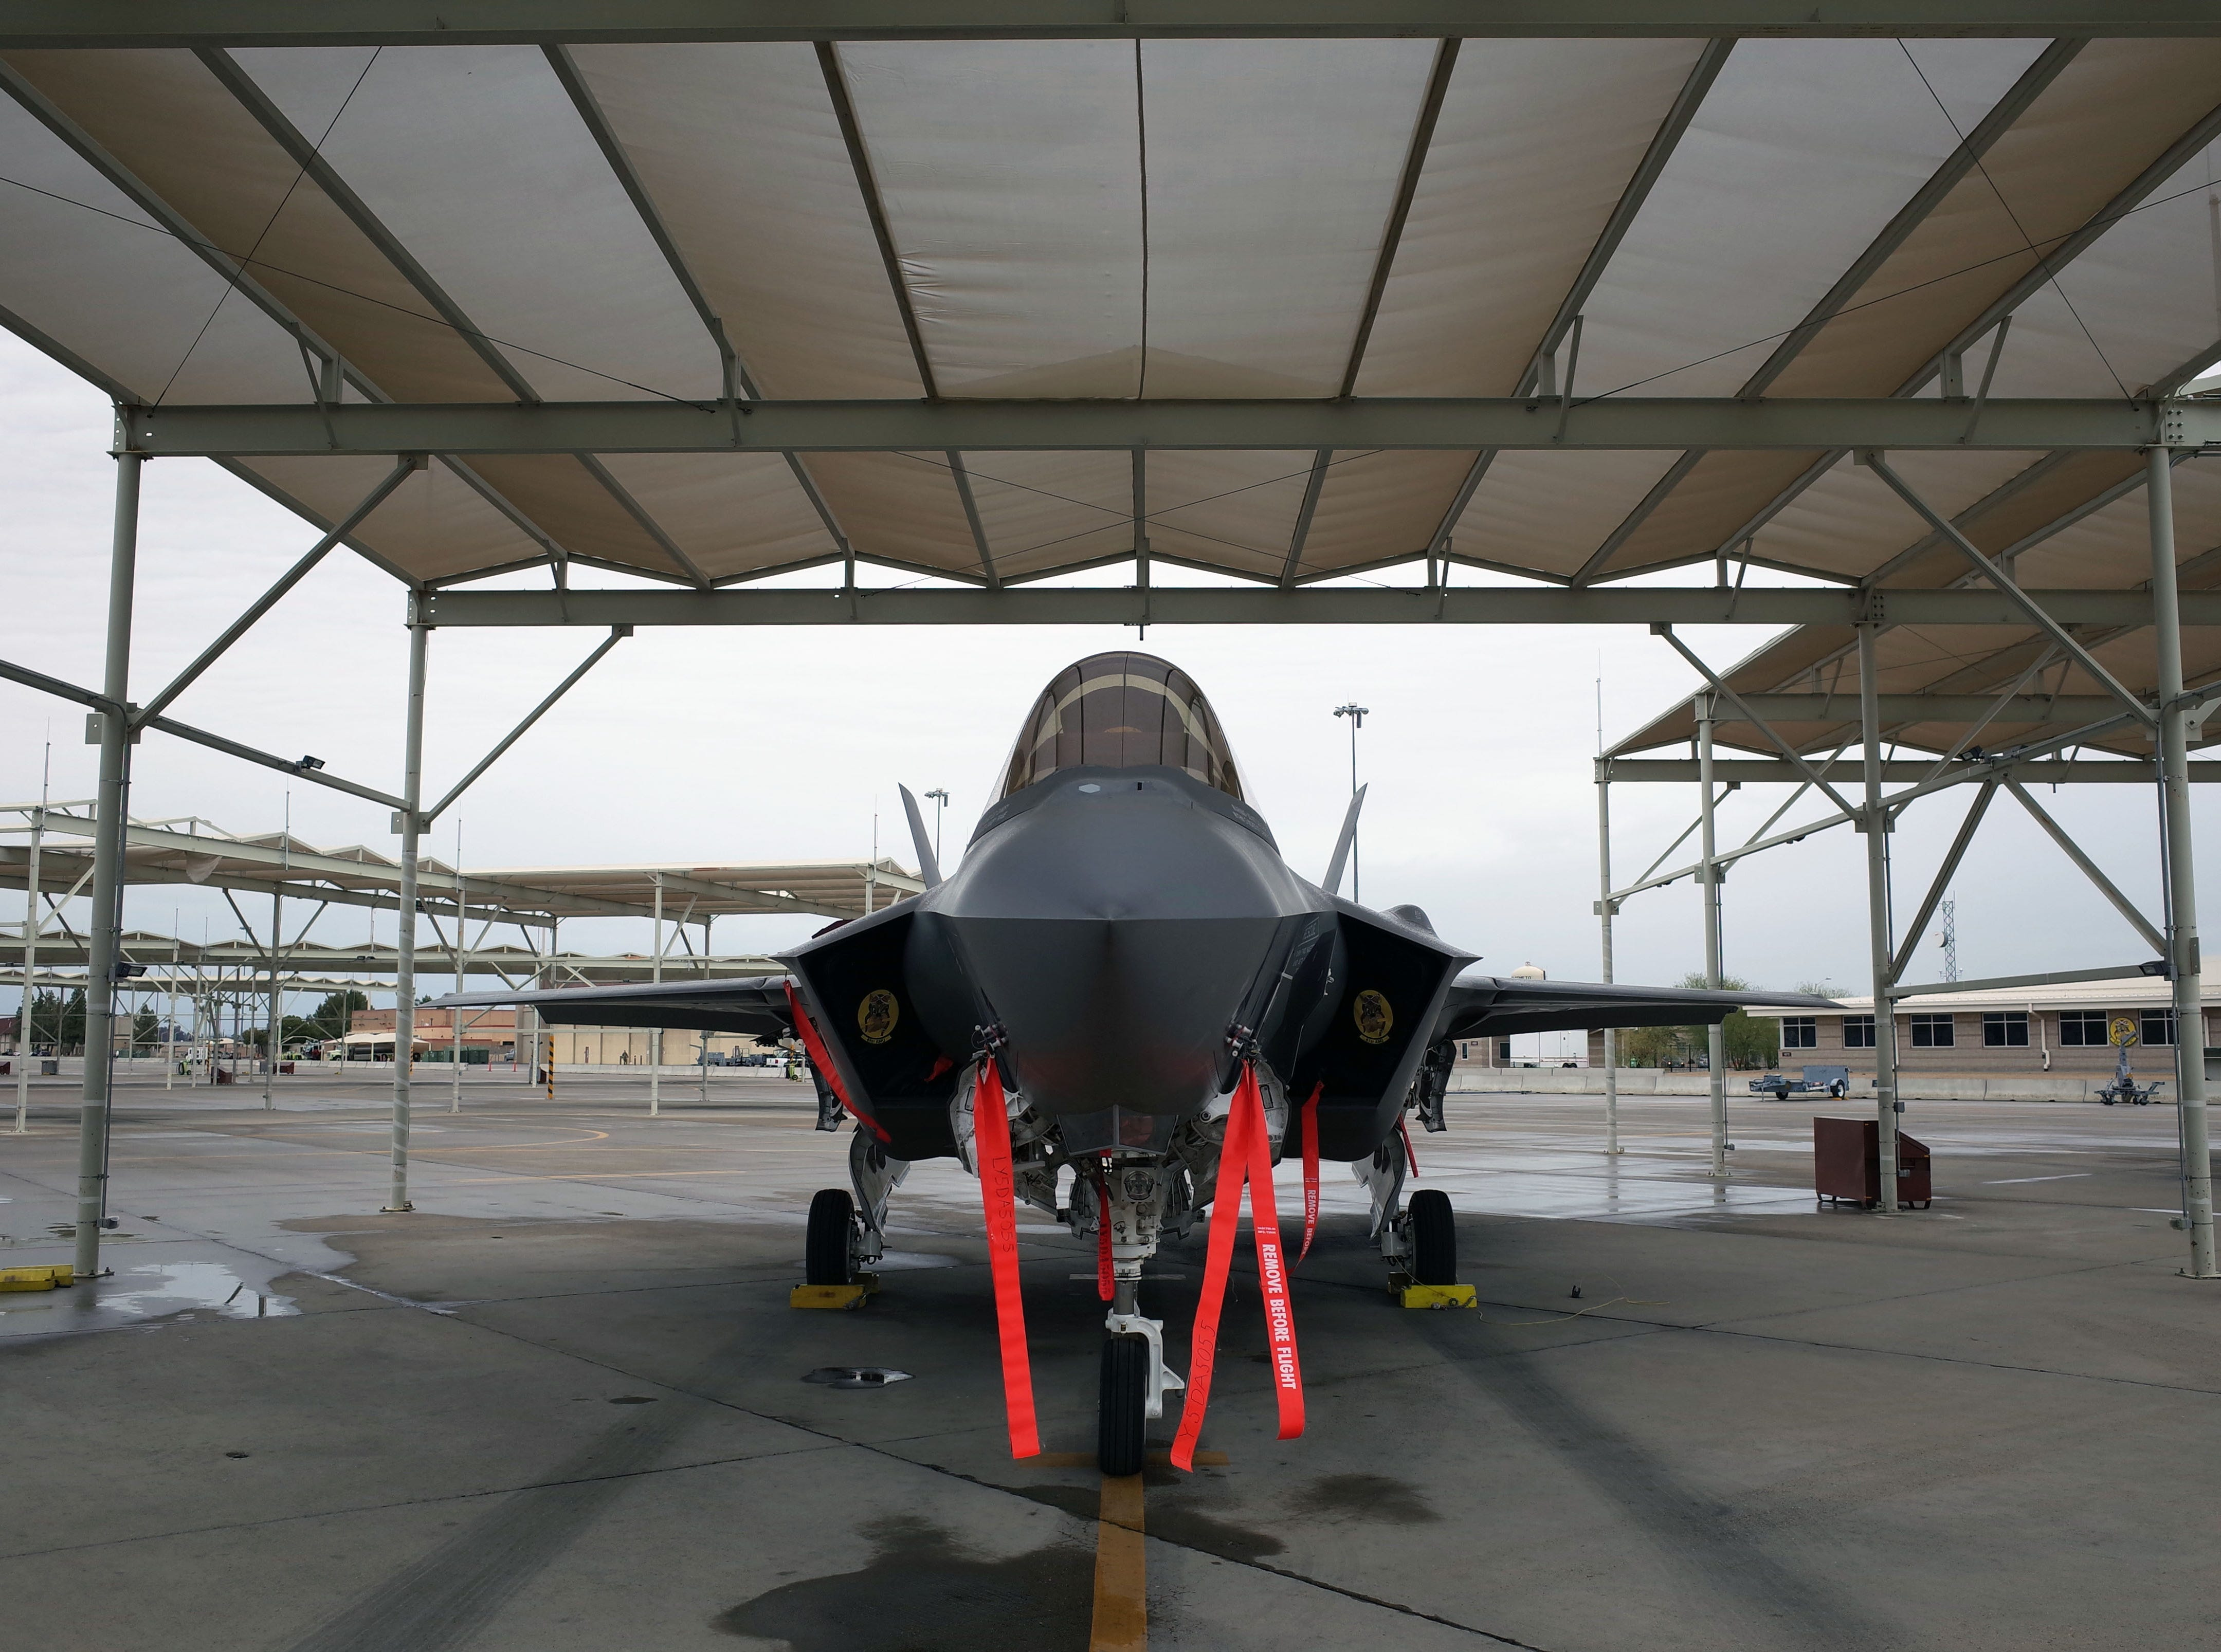 The F-35 is a 5th generation multi-role stealth fighter. The craft is specialized in electronic warfare and air to ground combat, but can also perform in air to air combat, according to manufacturer Lockheed Martin.